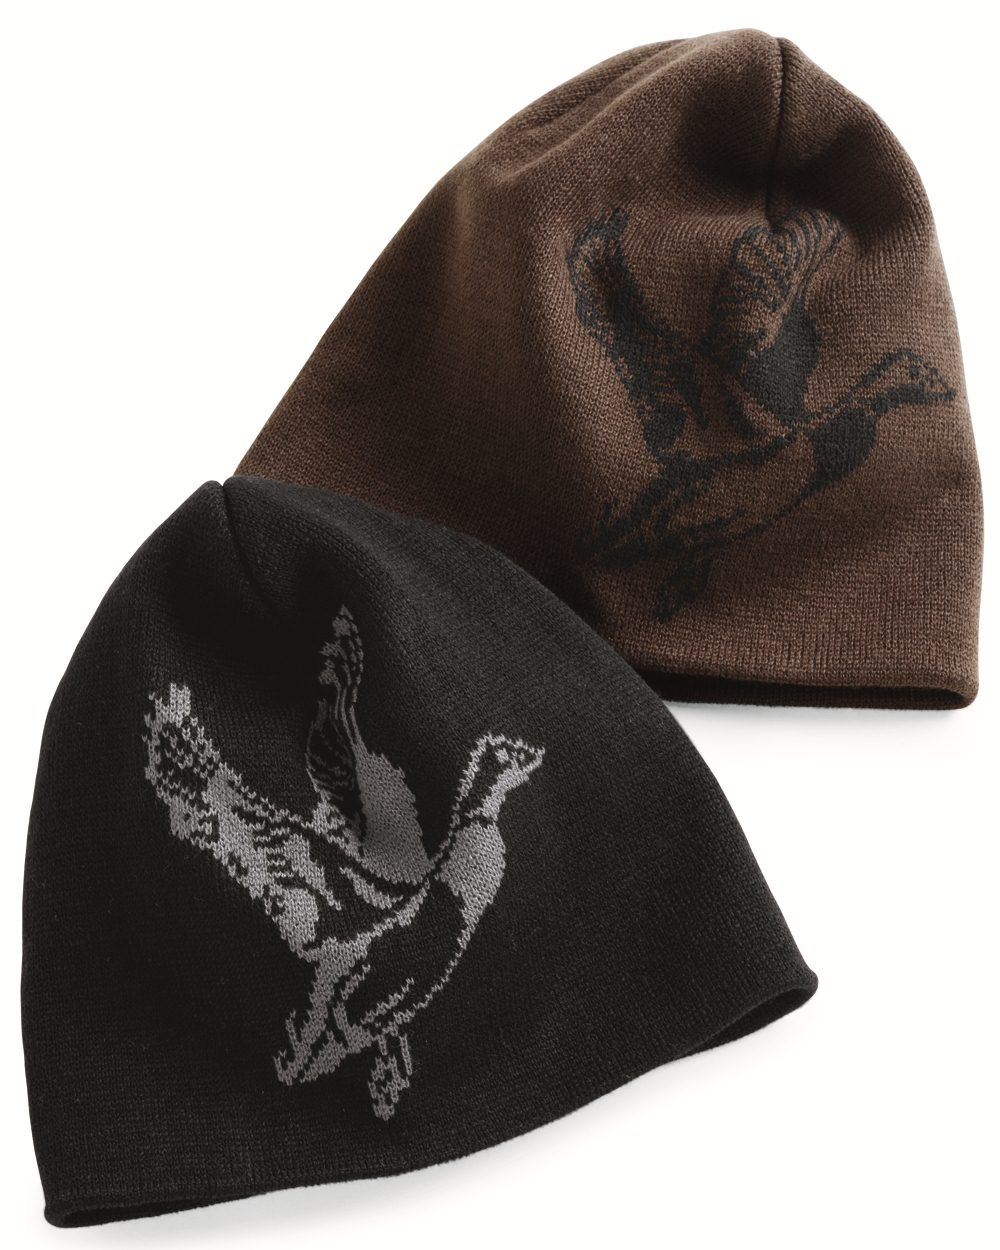 DRI DUCK Wildlife Mallard Knit Cap - 3522